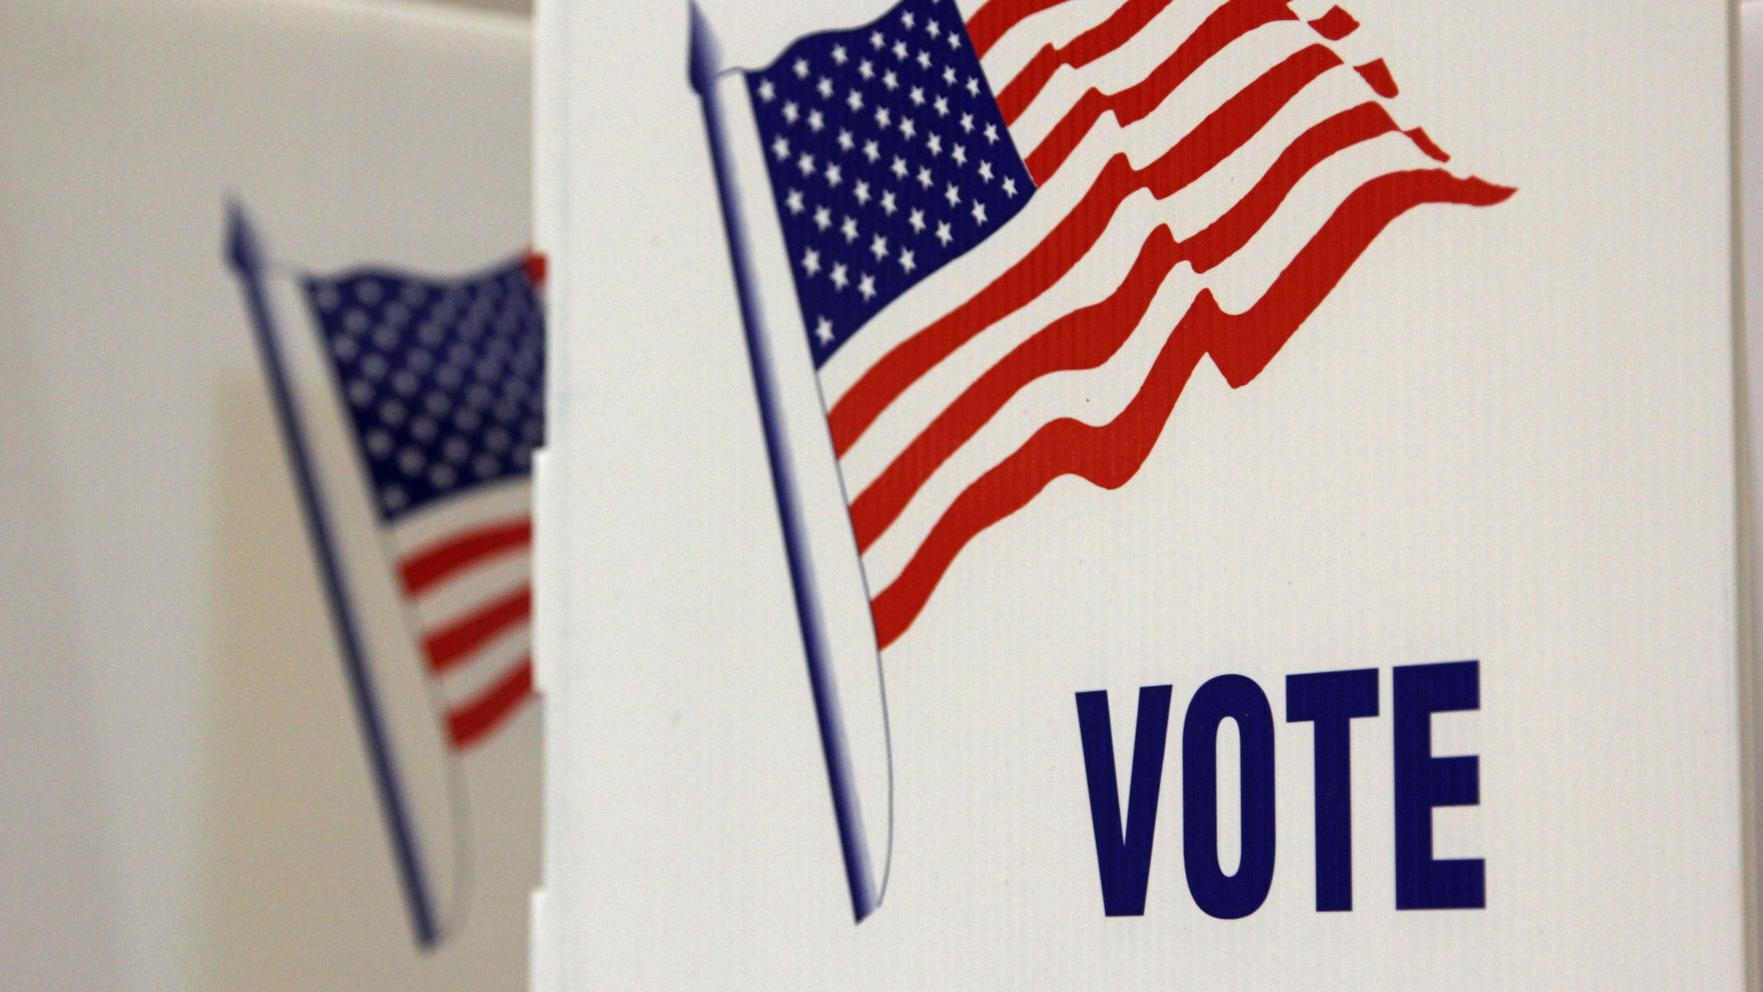 Monona's electees ready to move on after contentious election cycle